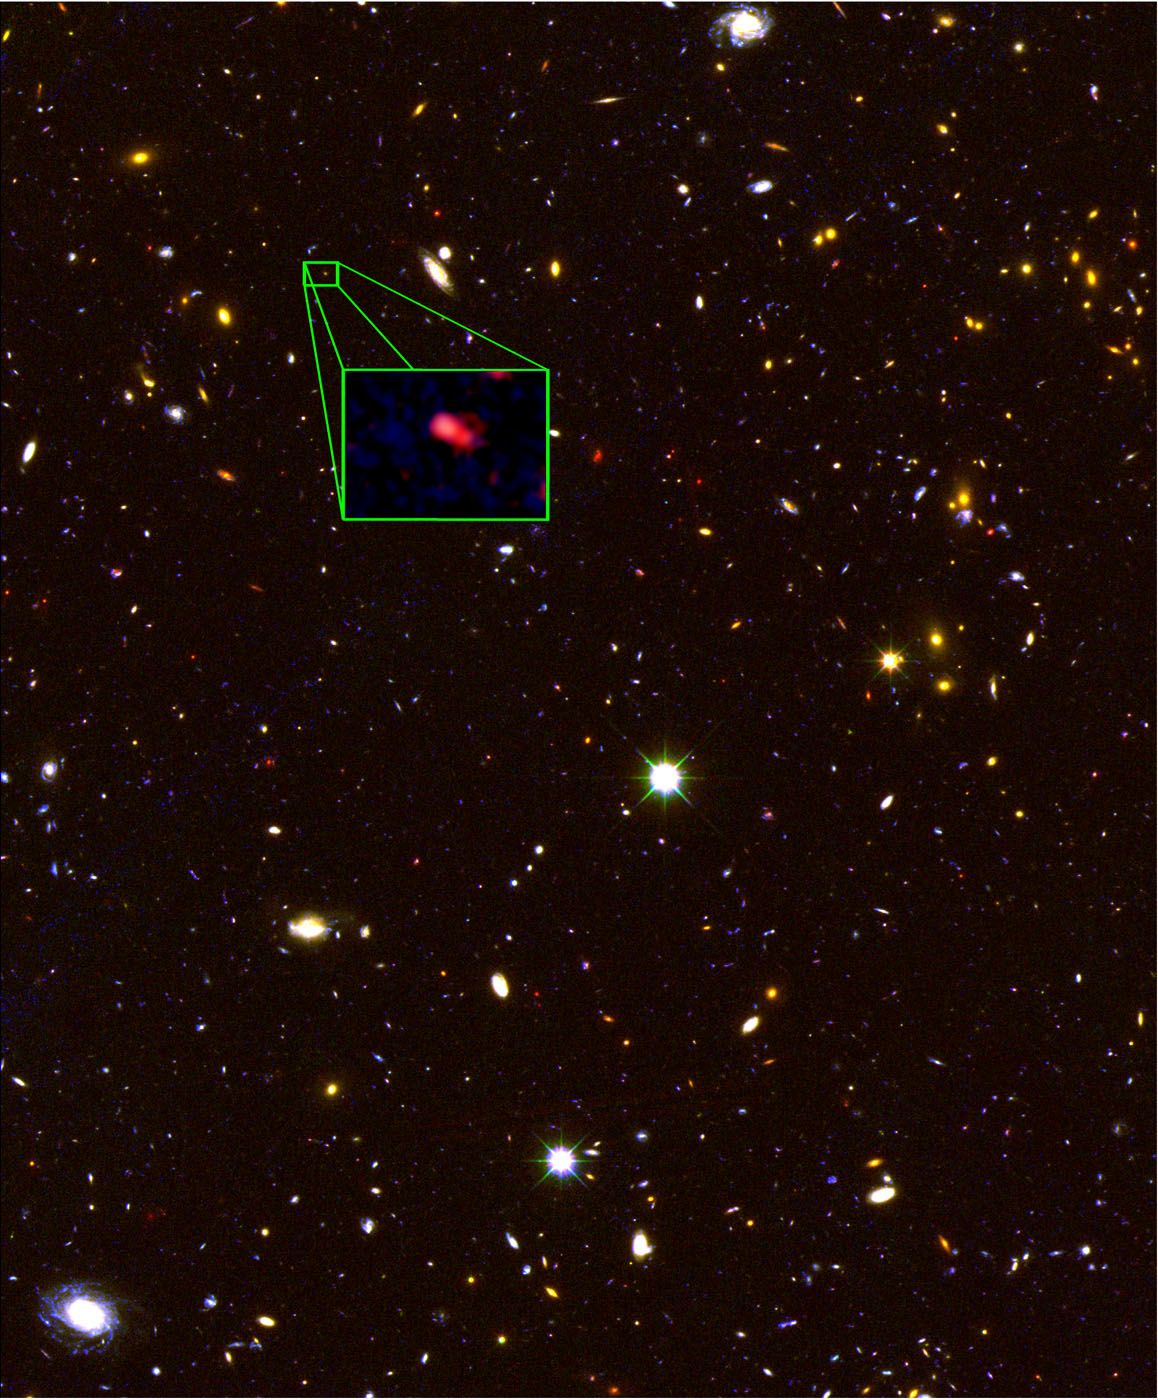 List of the most distant astronomical objects